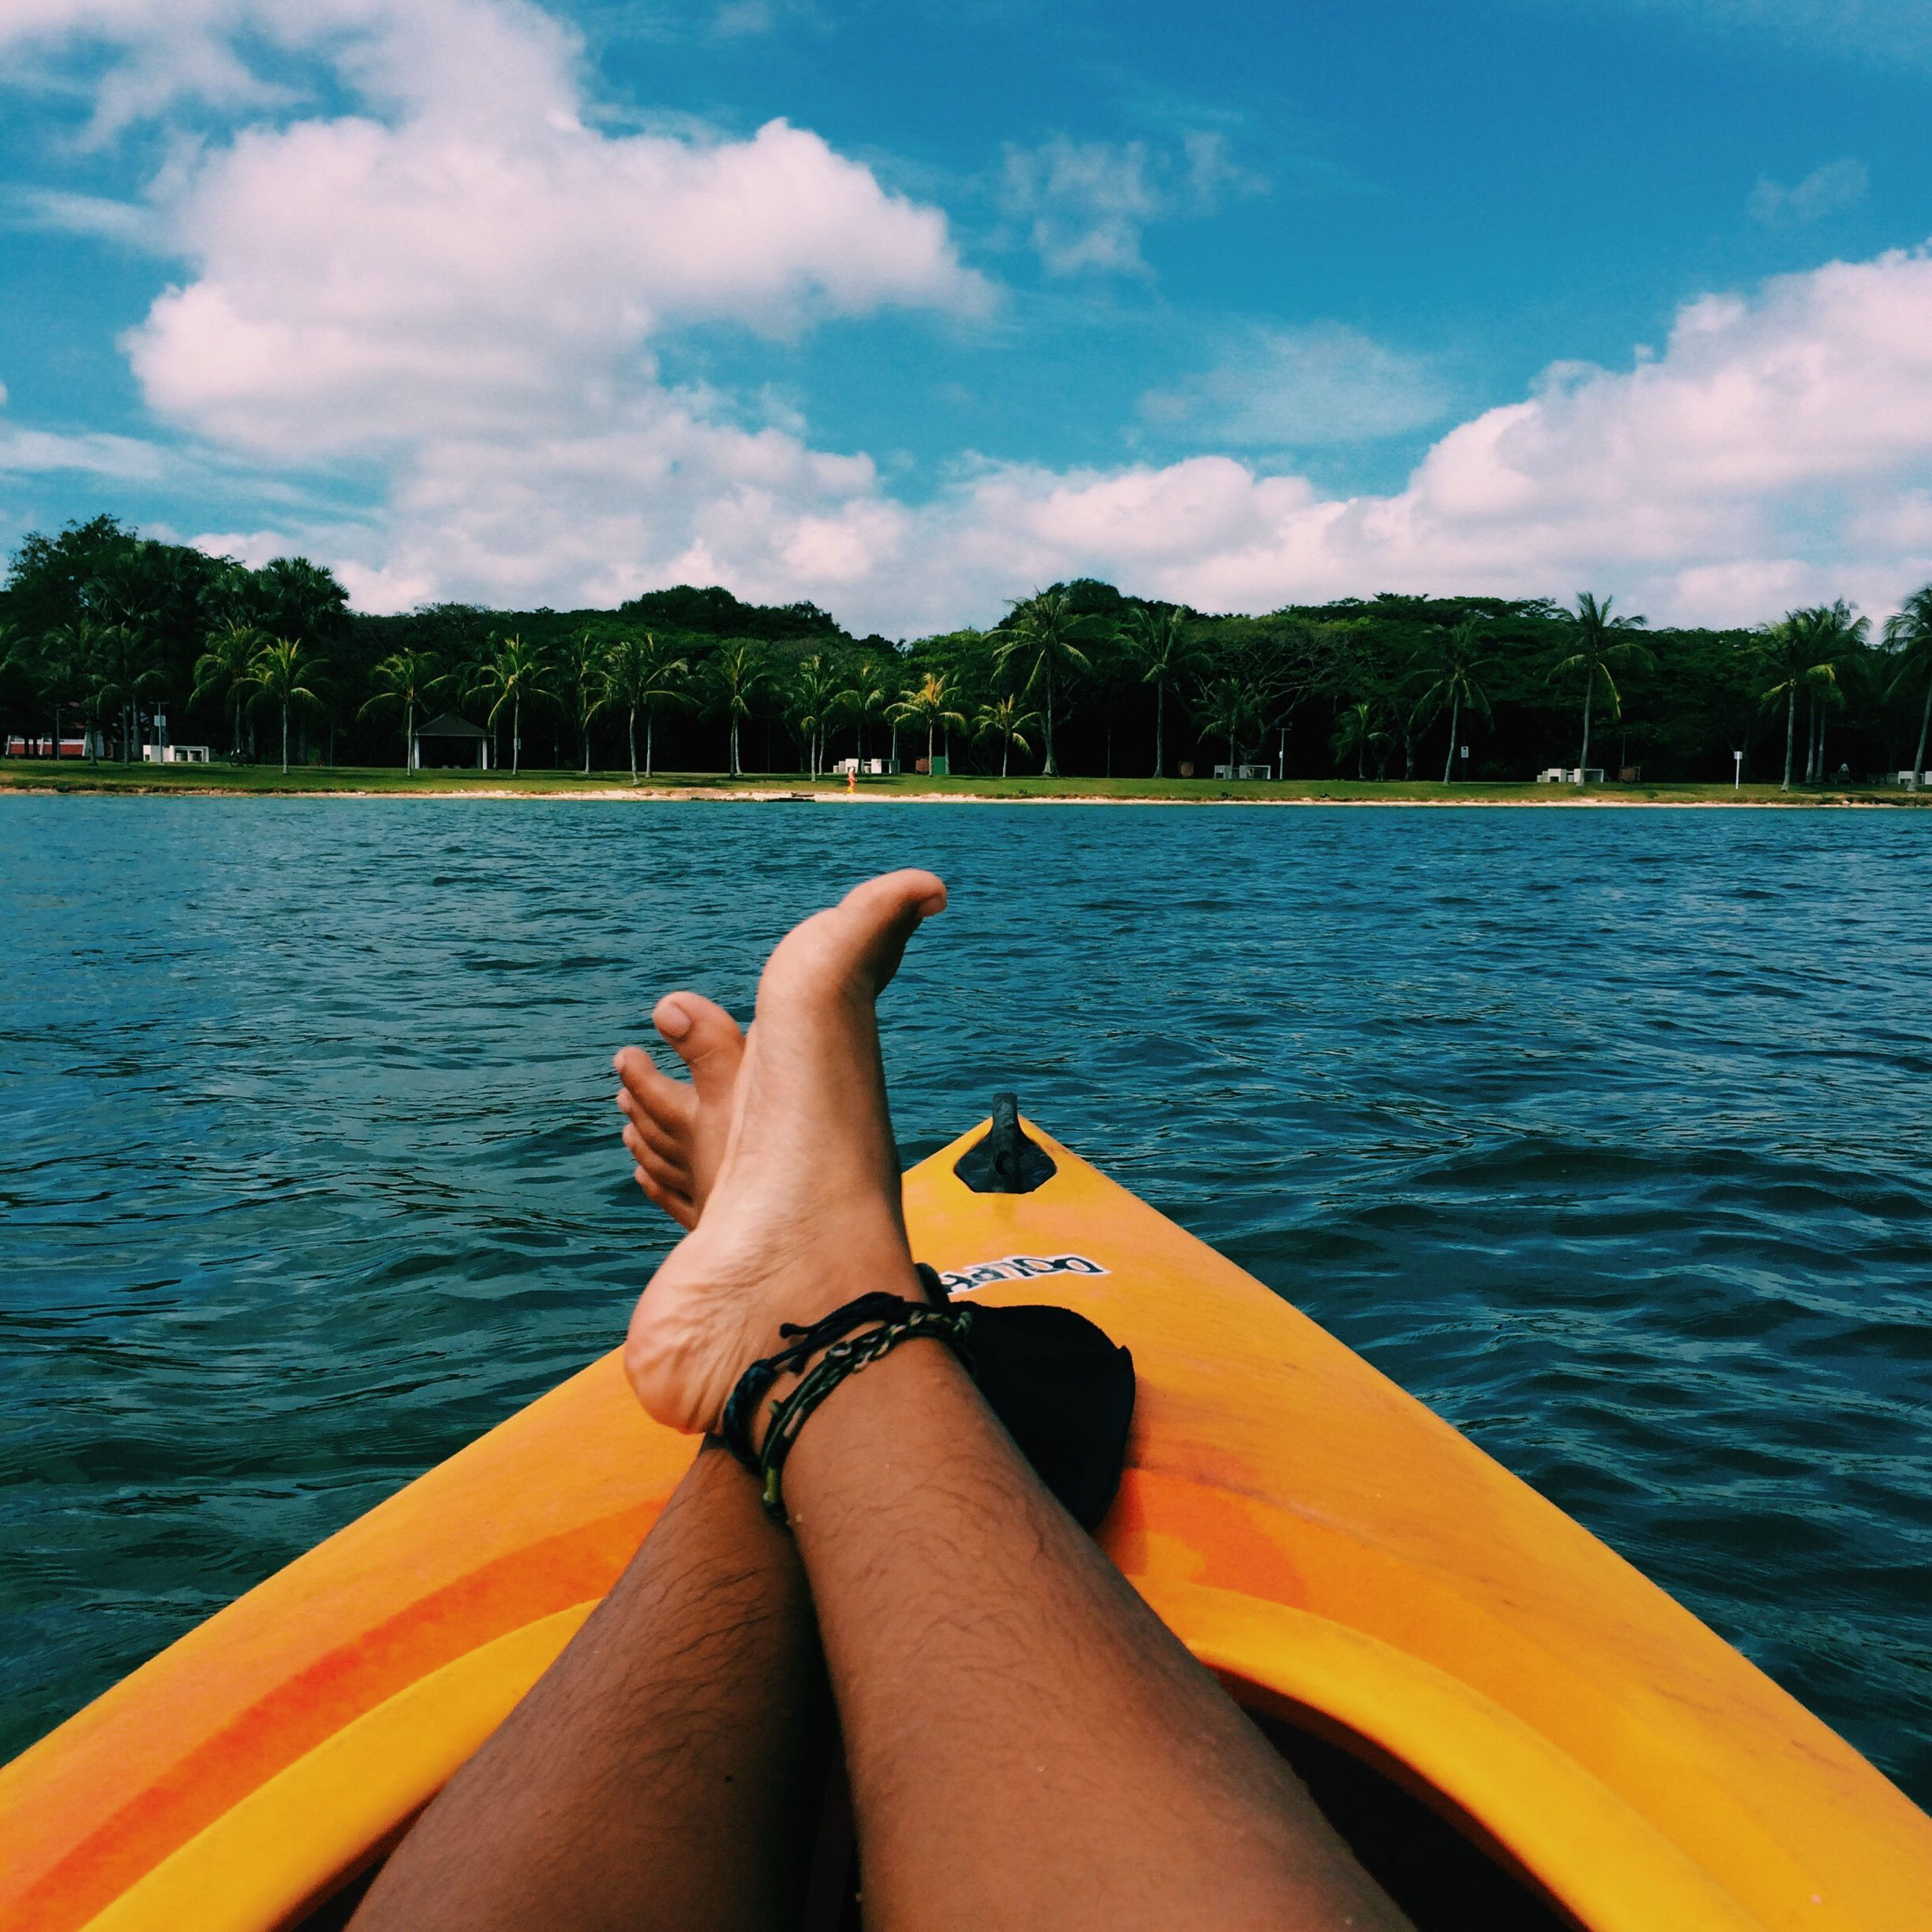 low section, relaxation, person, personal perspective, young adult, water, sky, tourism, lake, sensuality, leisure, tree, legs crossed at ankle, vacations, lying down, leisure activity, tourist, young women, resting, relaxing, weekend activities, blue, tranquility, cloud, tranquil scene, day, outdoors